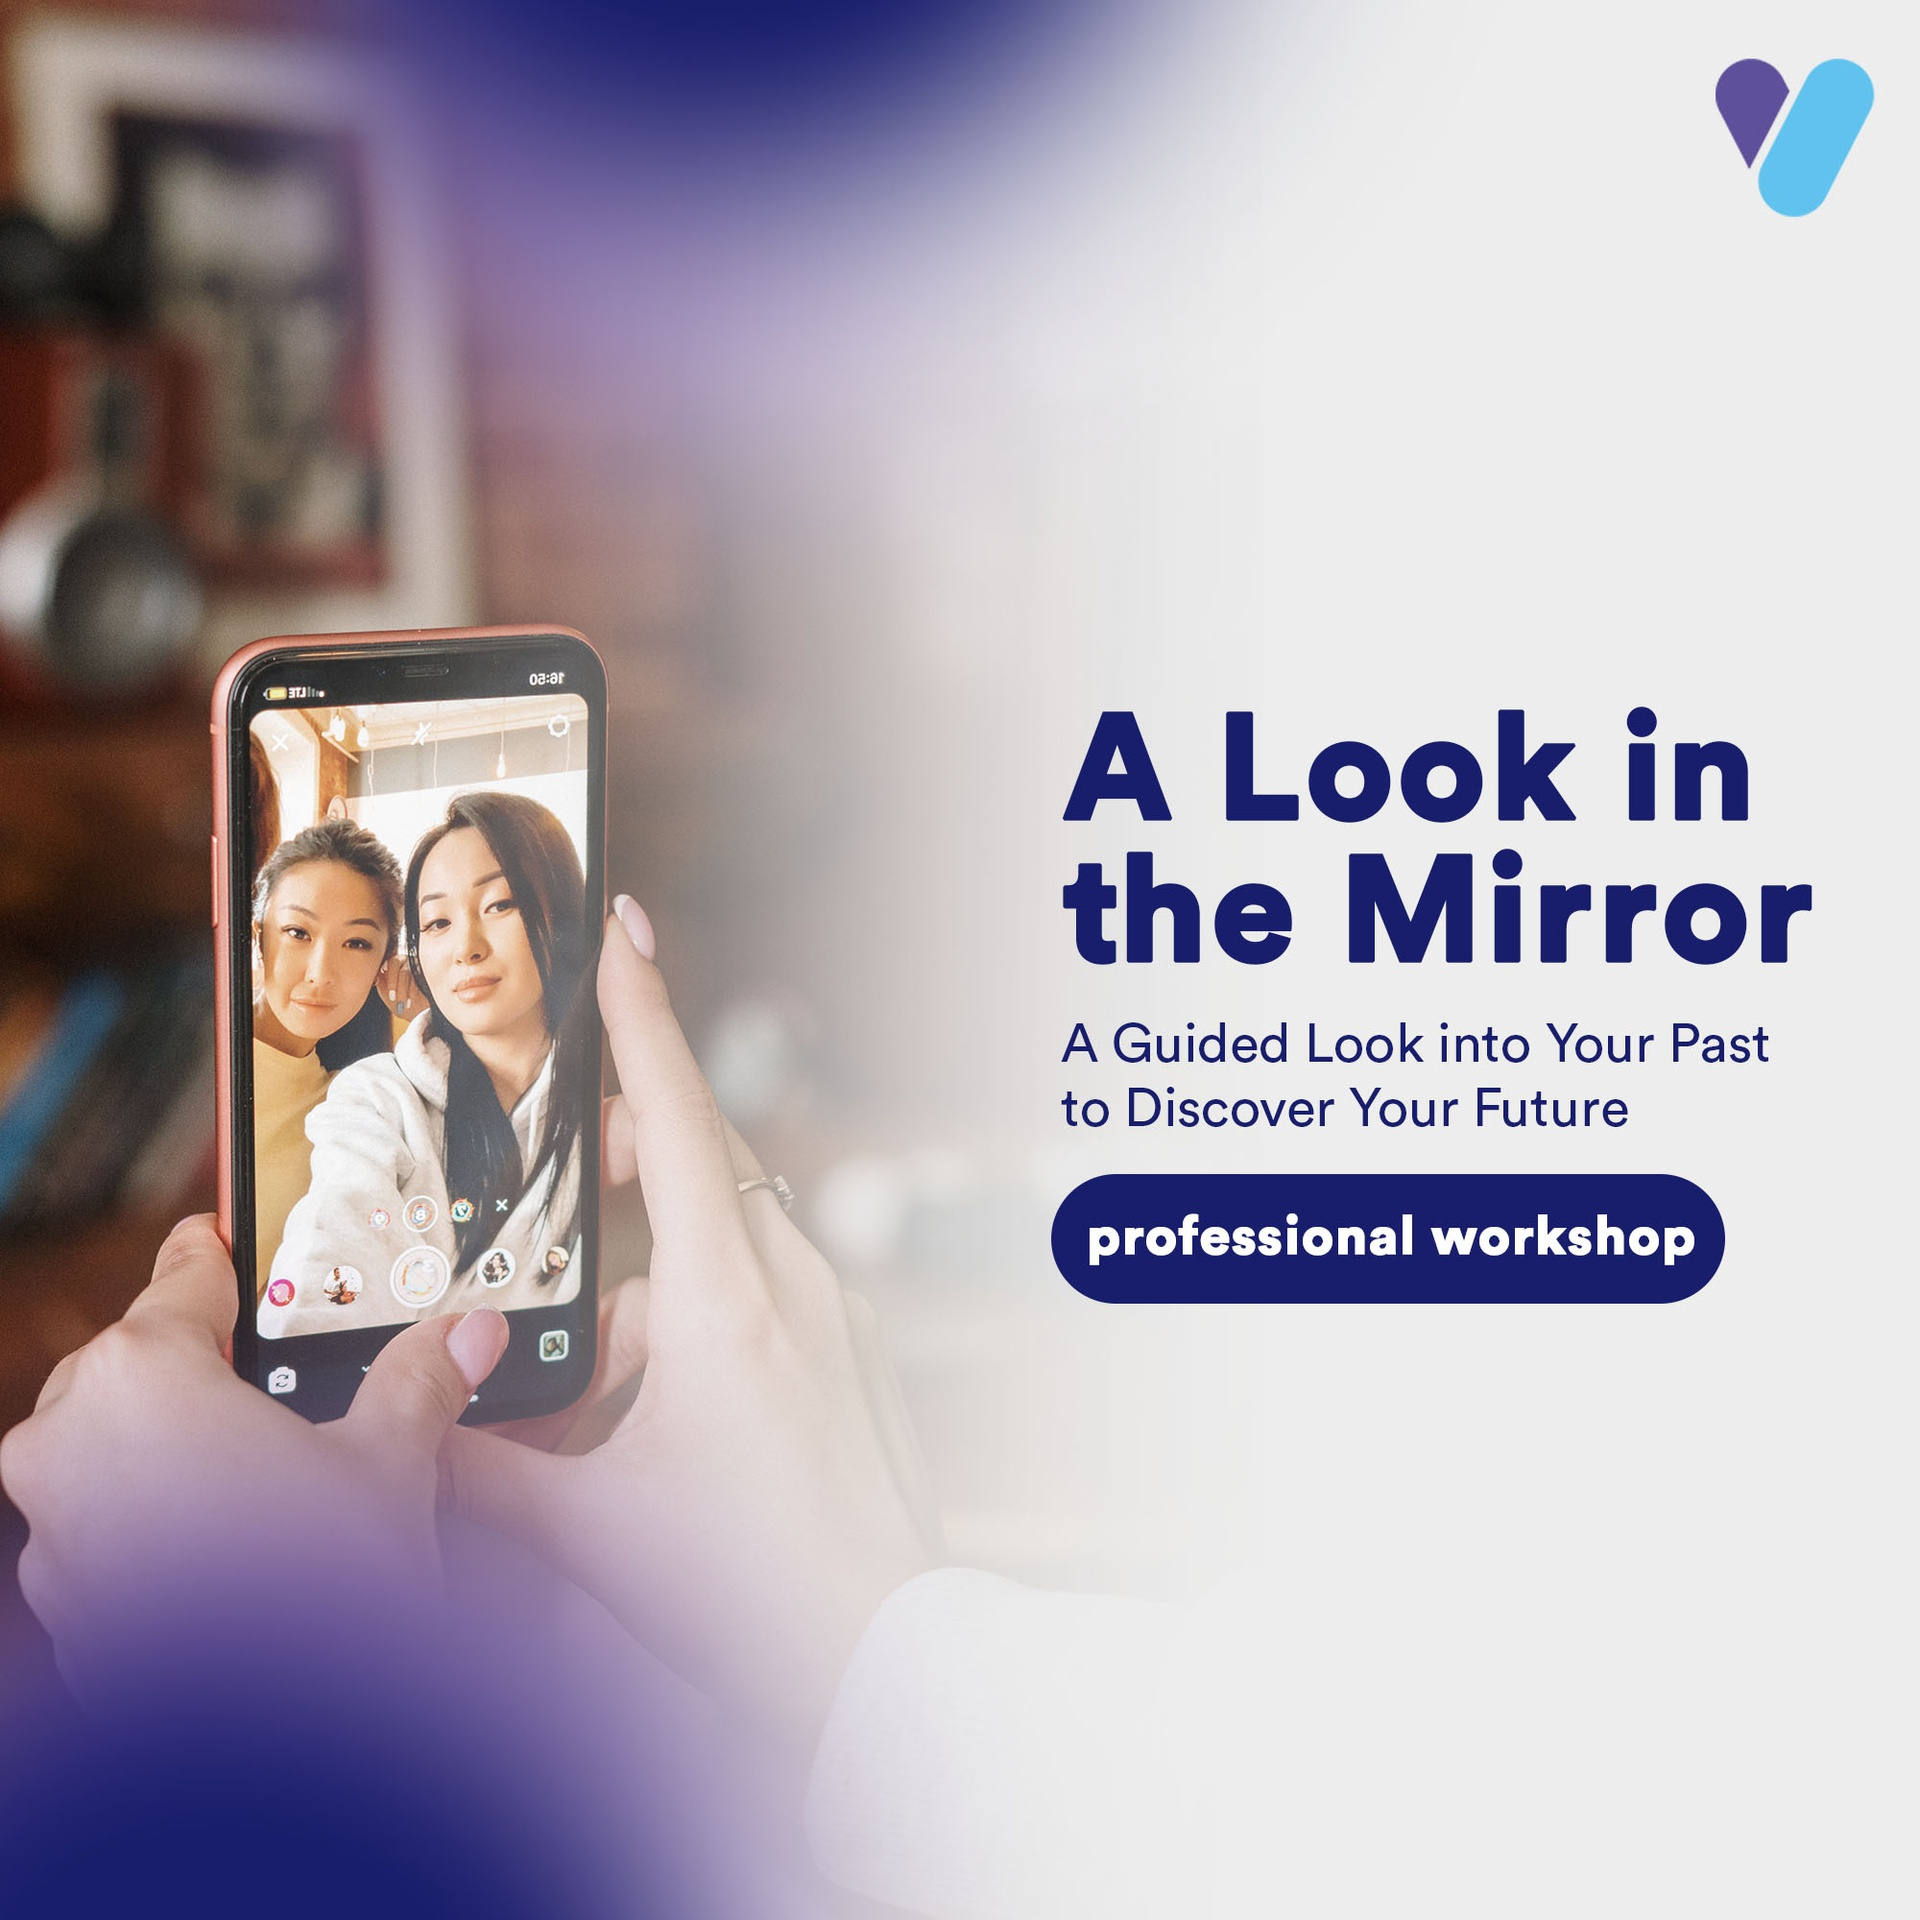 A Look in The Mirror: A Guided Look into Your Past to Discover Your Future